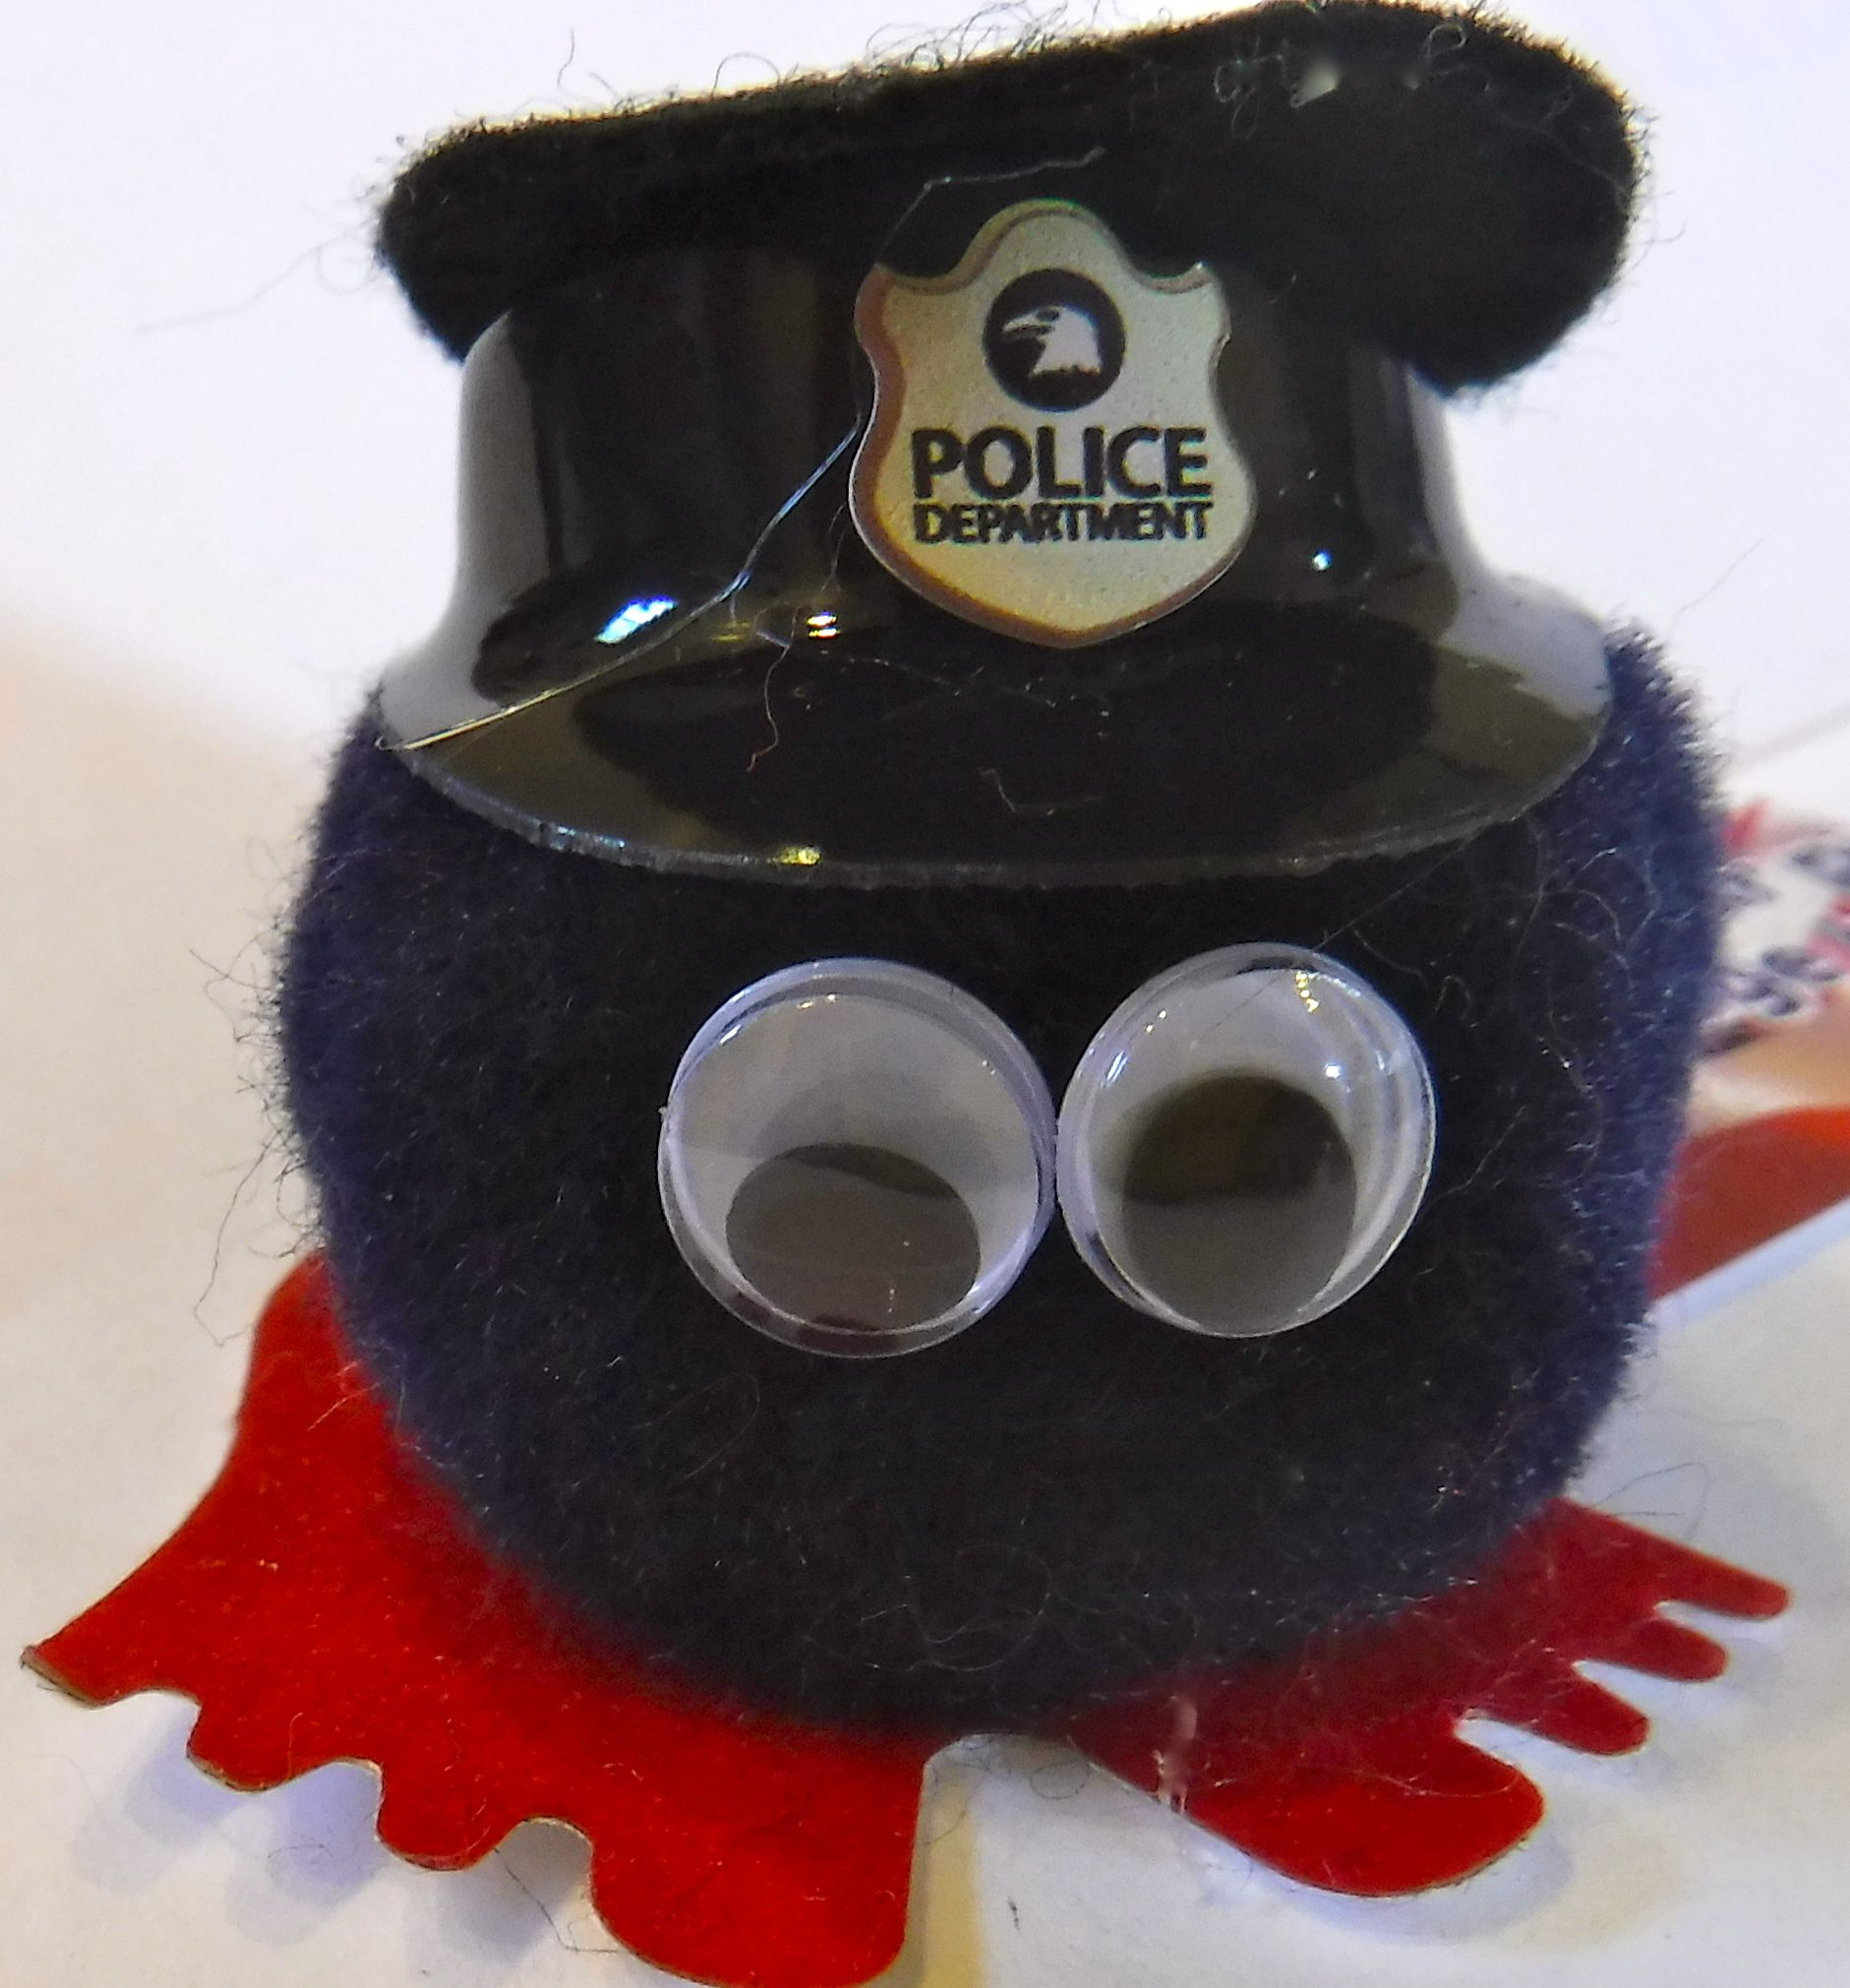 Police Weepul serves as a important public relations role in police departments across the USA. #Police